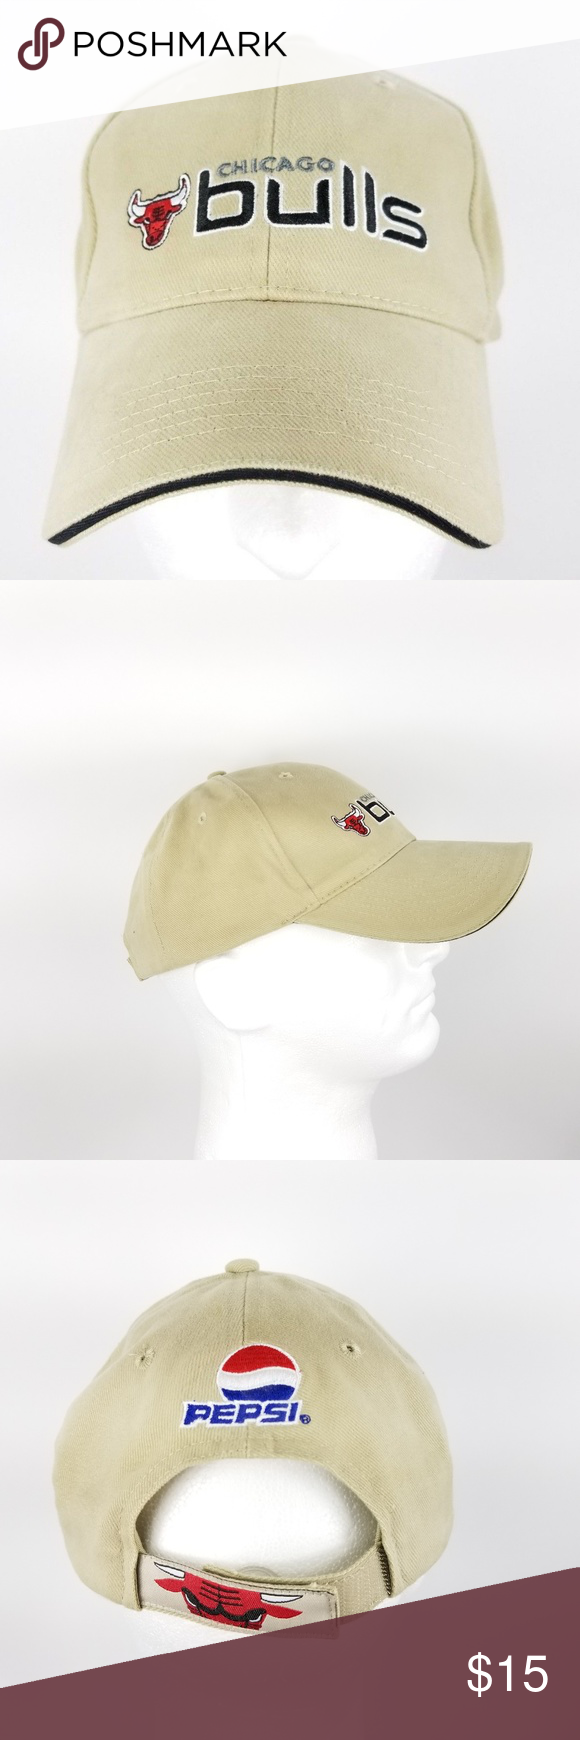 98b0eec5 Kick 10 Chicago Bulls Strapback Dad Hat Tan Black Kick 10 Chicago Bulls  Strapback Dad Hat Tan Black Red Pepsi Pro Gear Spellout Very Good Condition!